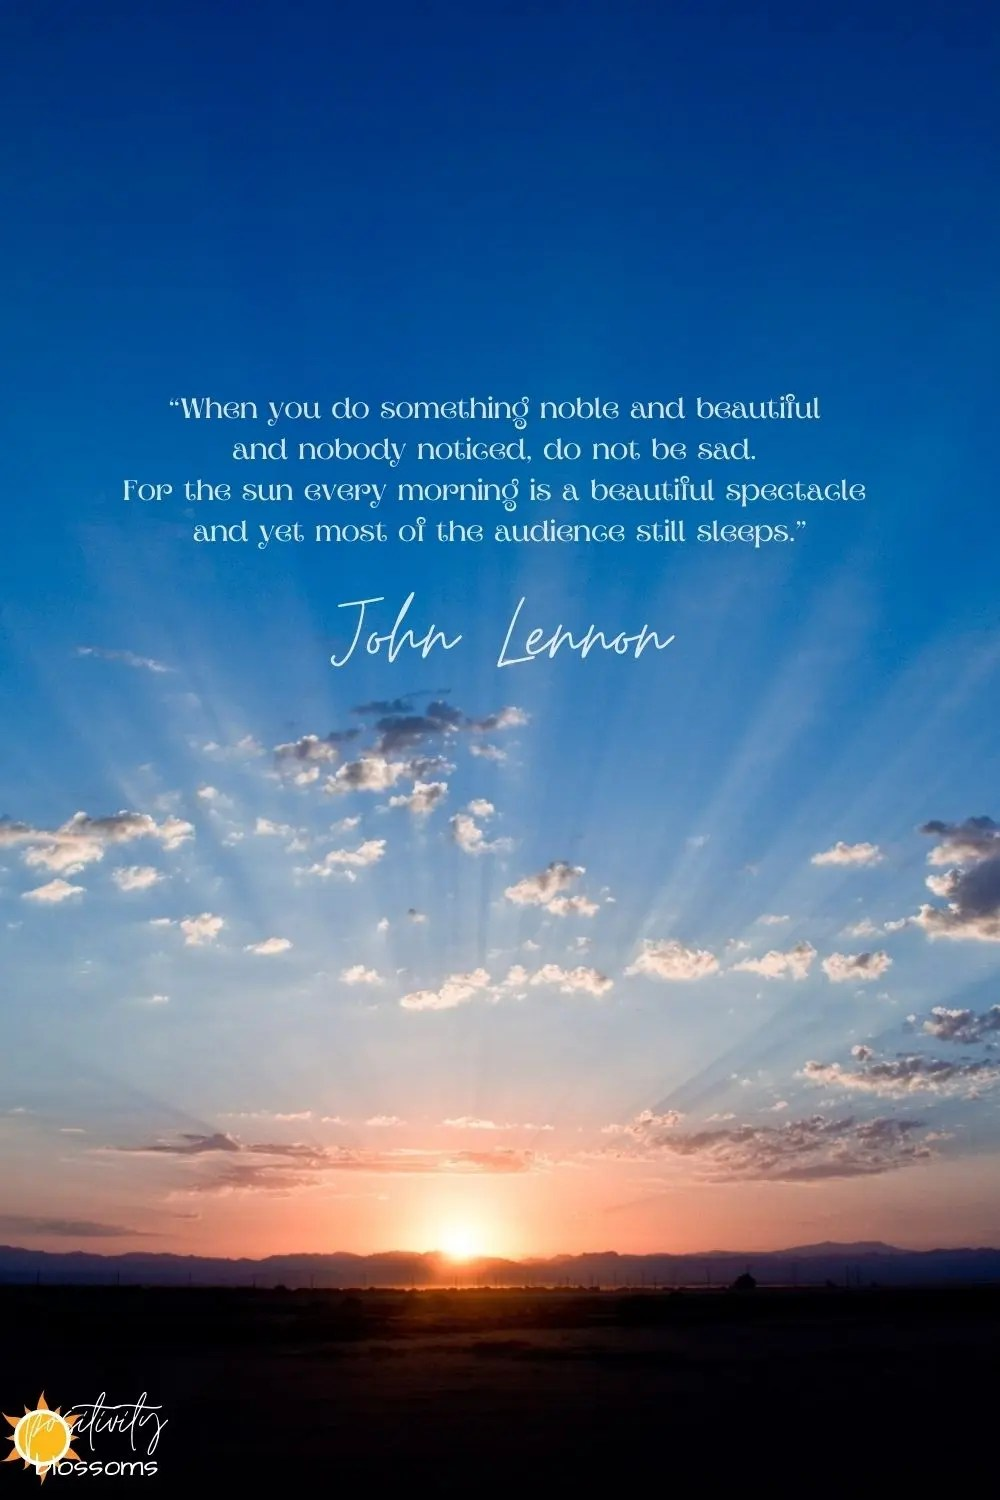 John Lennon Quote. When you do something noble and beautiful and nobody noticed, do not be sad. For the sun every morning is a beautiful spectacle and yet most of the audience still sleeps. Positivity Blossoms Image pinnable 2